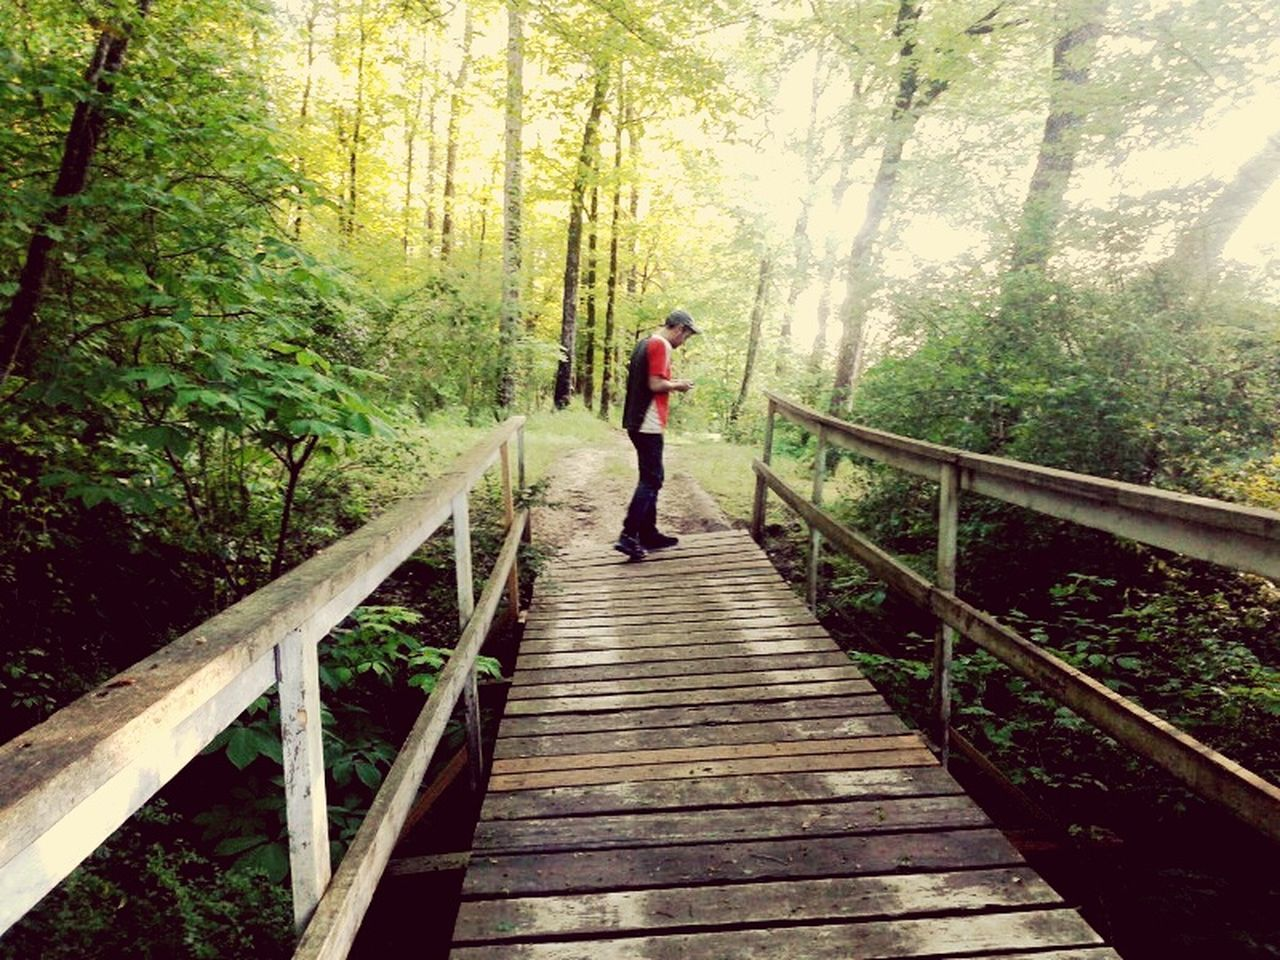 tree, forest, wood - material, nature, full length, the way forward, railing, footbridge, real people, one person, growth, tranquil scene, beauty in nature, day, outdoors, adventure, leisure activity, scenics, lifestyles, wood paneling, hiking, standing, men, adult, people